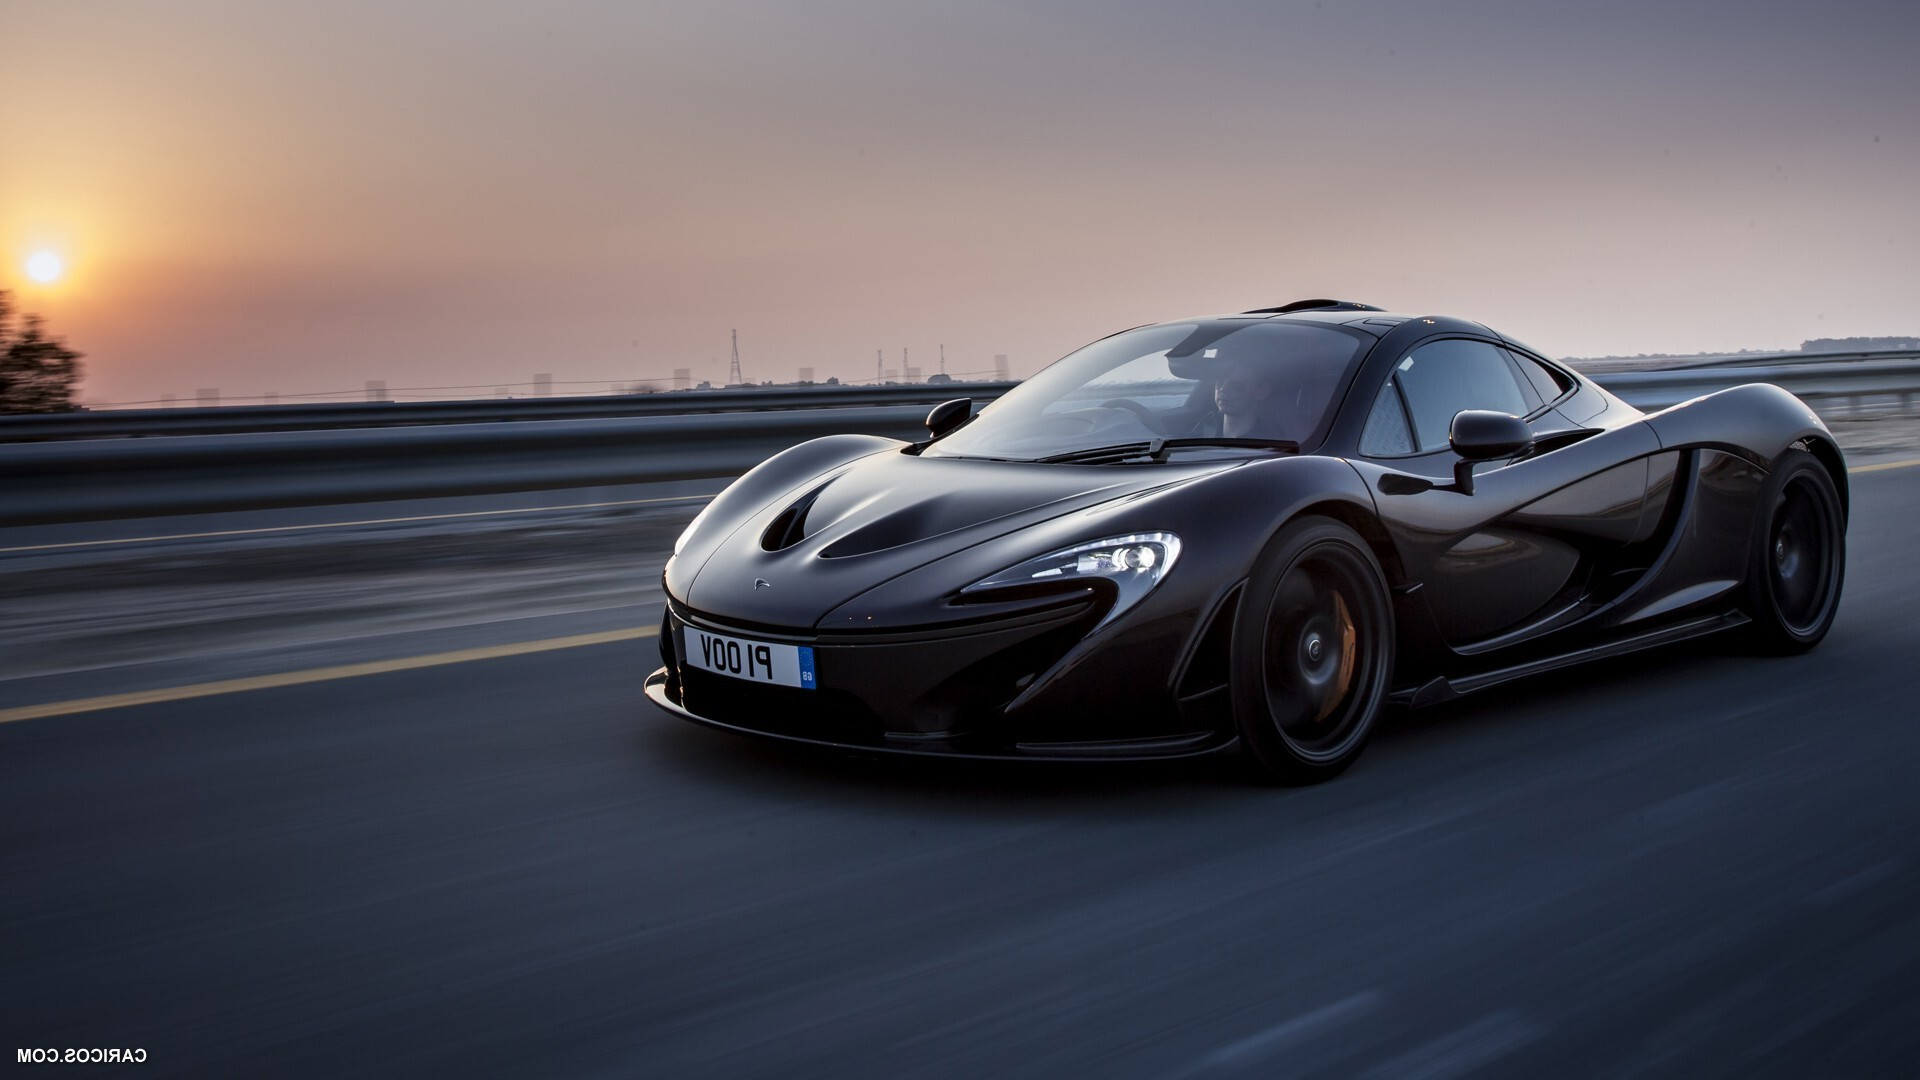 1920x1080 Mclaren P1 Supercar Laptop Full HD 1080P HD 4k